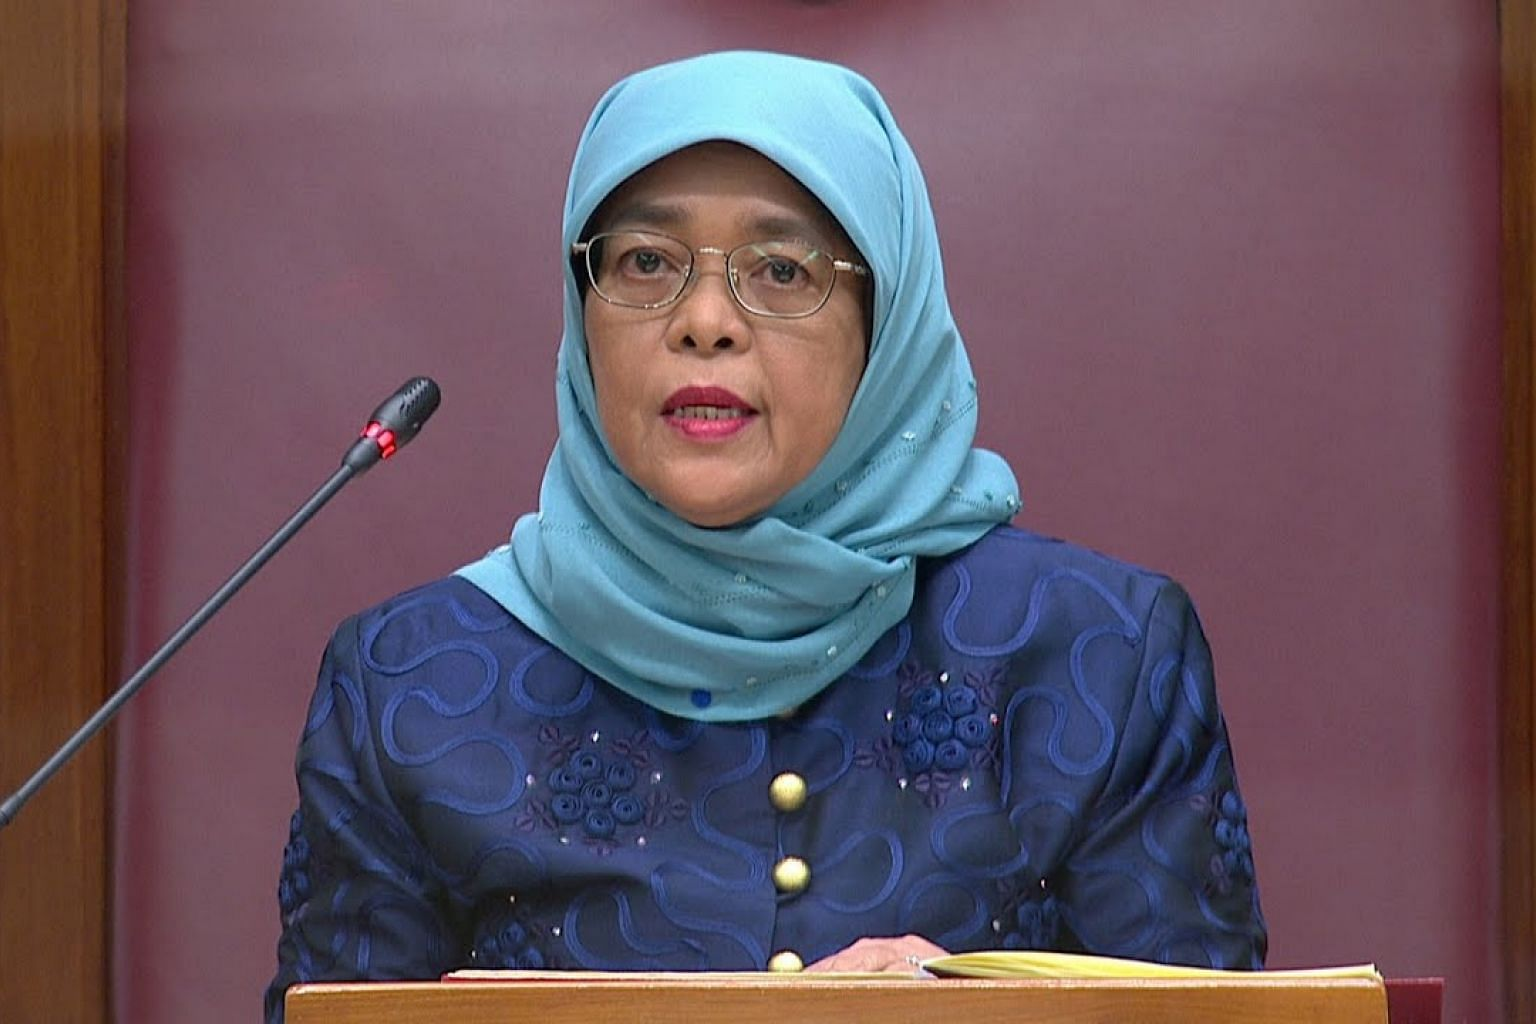 President Halimah Yacob to deliver address for opening of 14th Parliament   ST LIVE